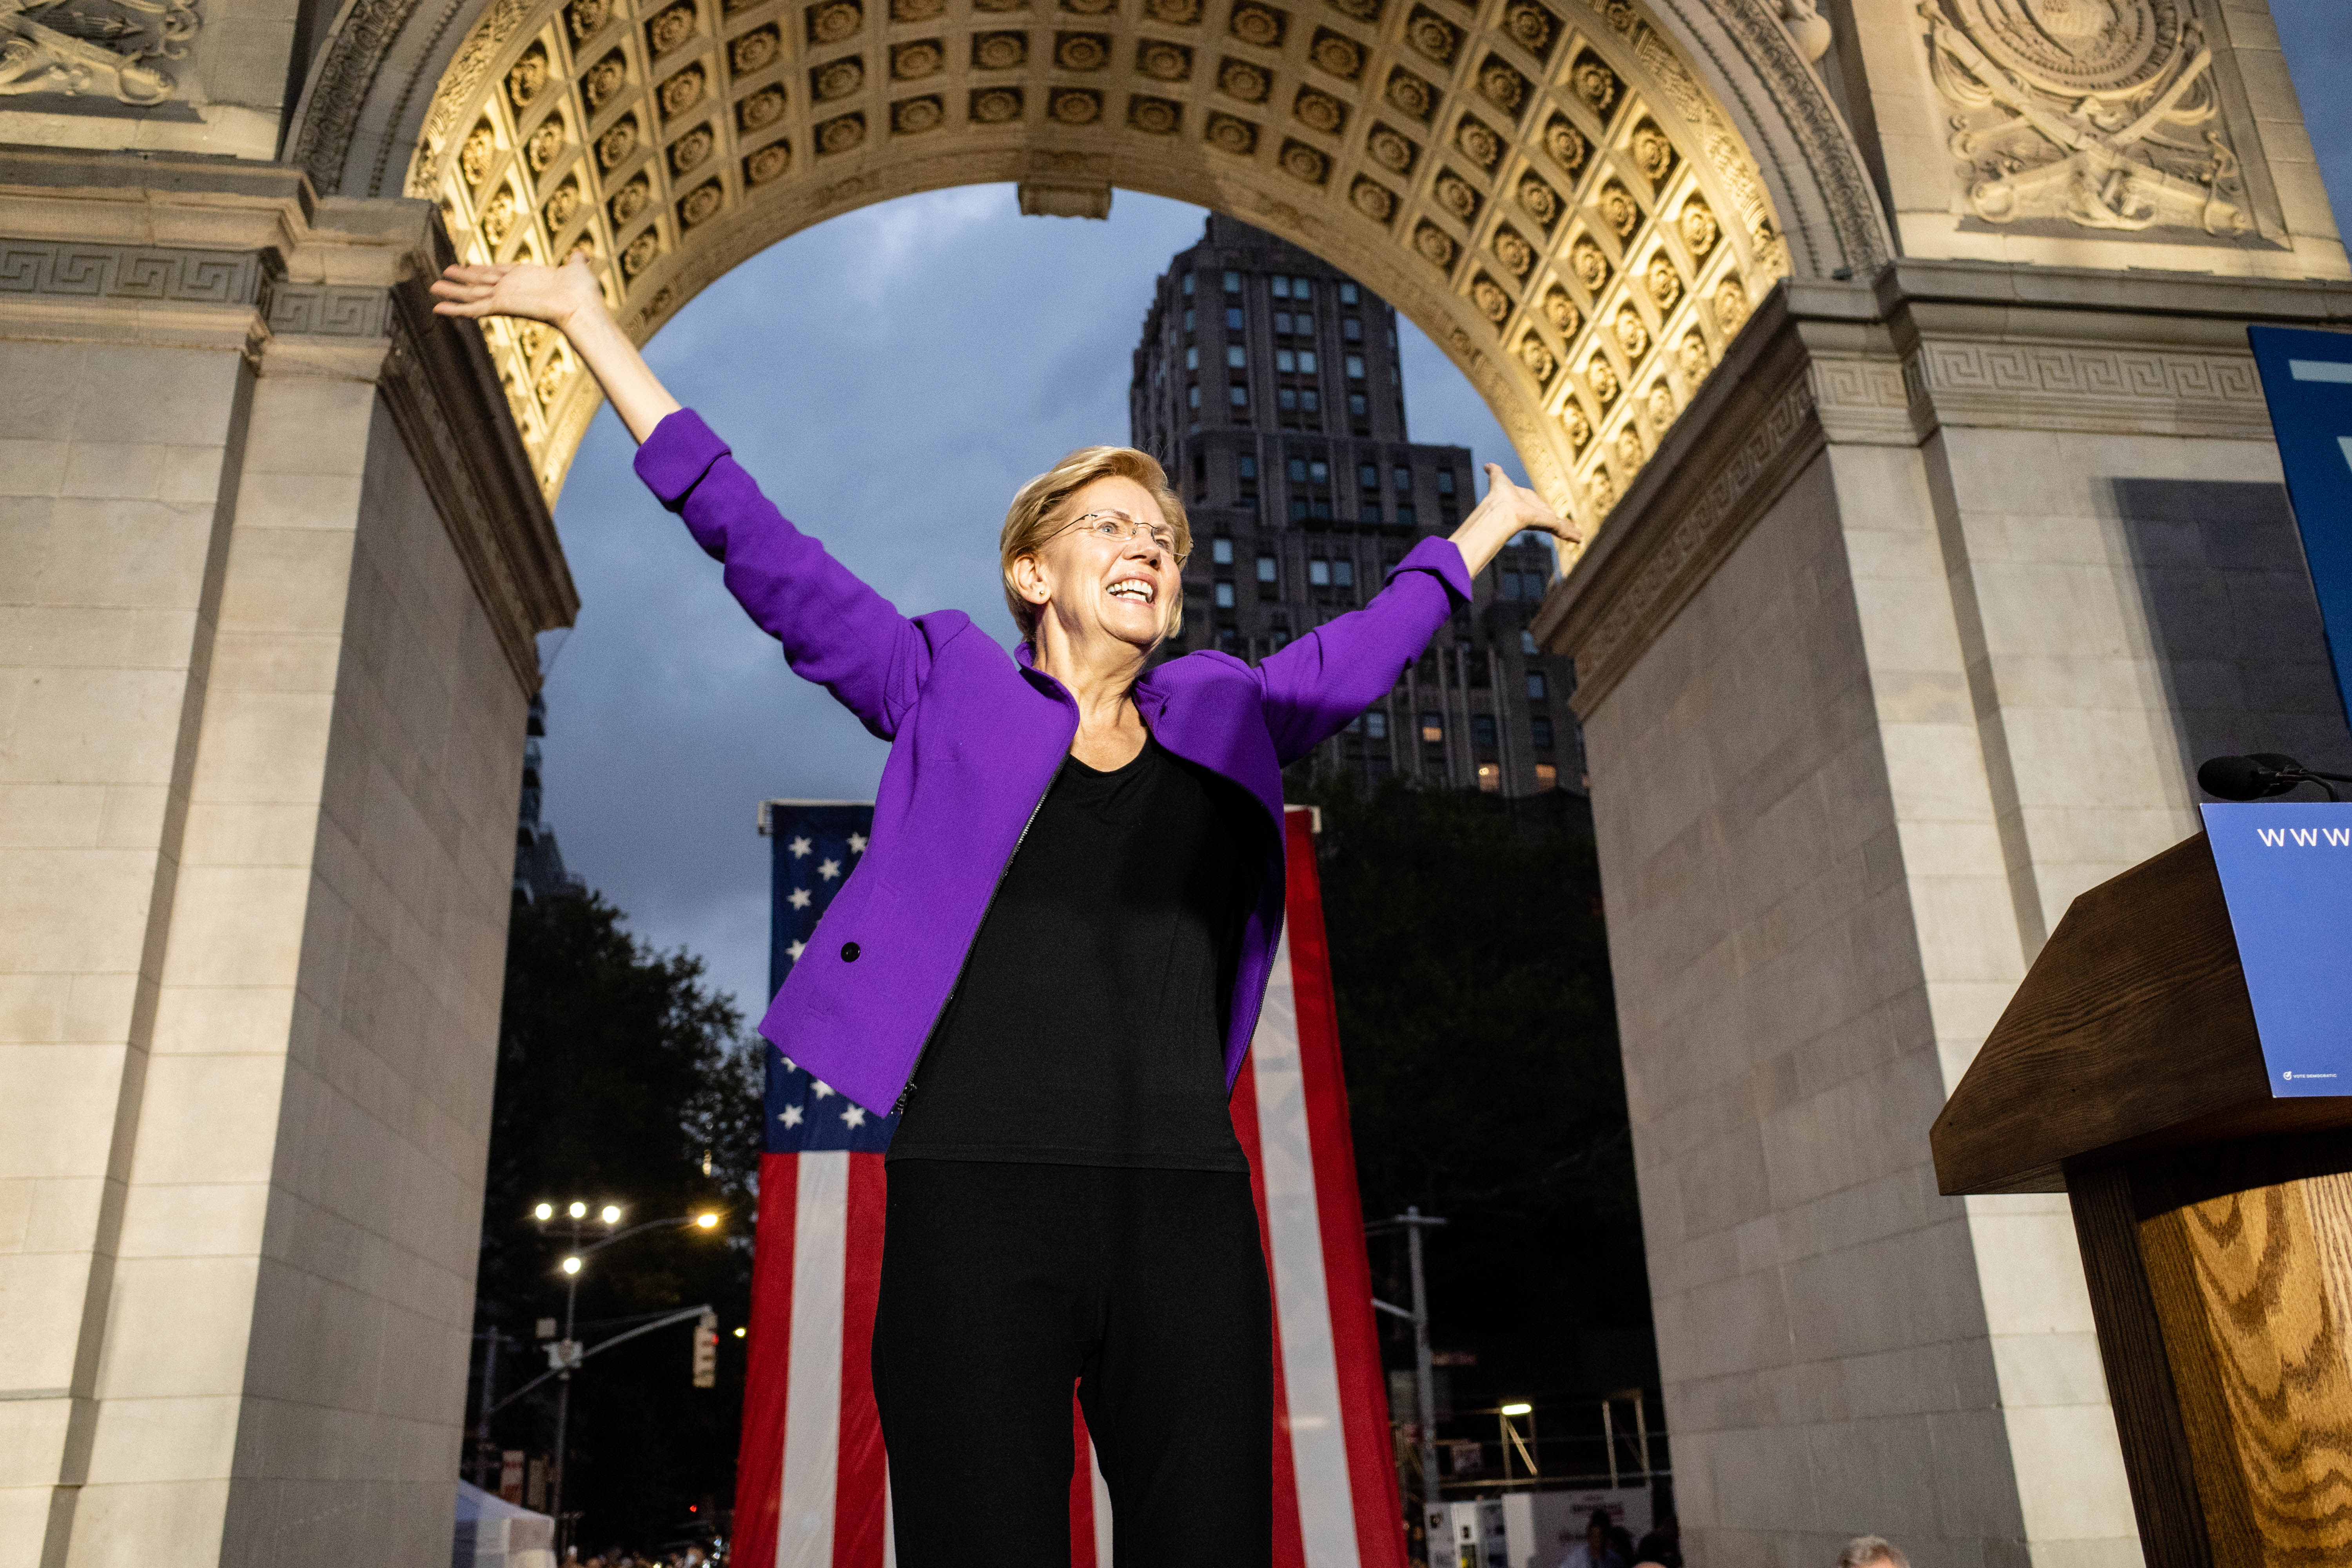 Warren raises her arms and smiles in front of a giant US flag suspended from the arch in New York's Washington Square Park.